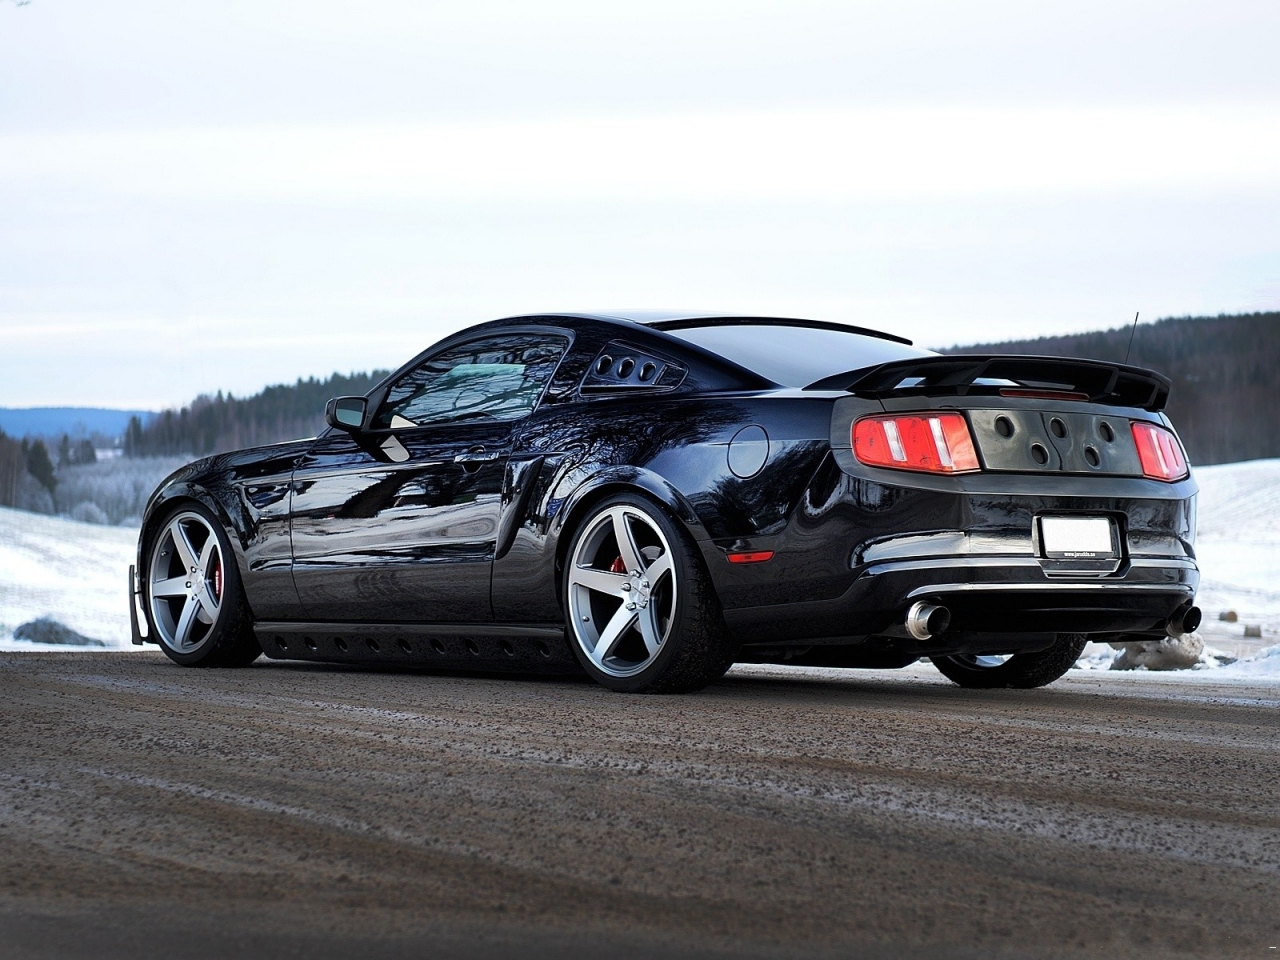 Ford Mustang GT 2013 - 1280x960